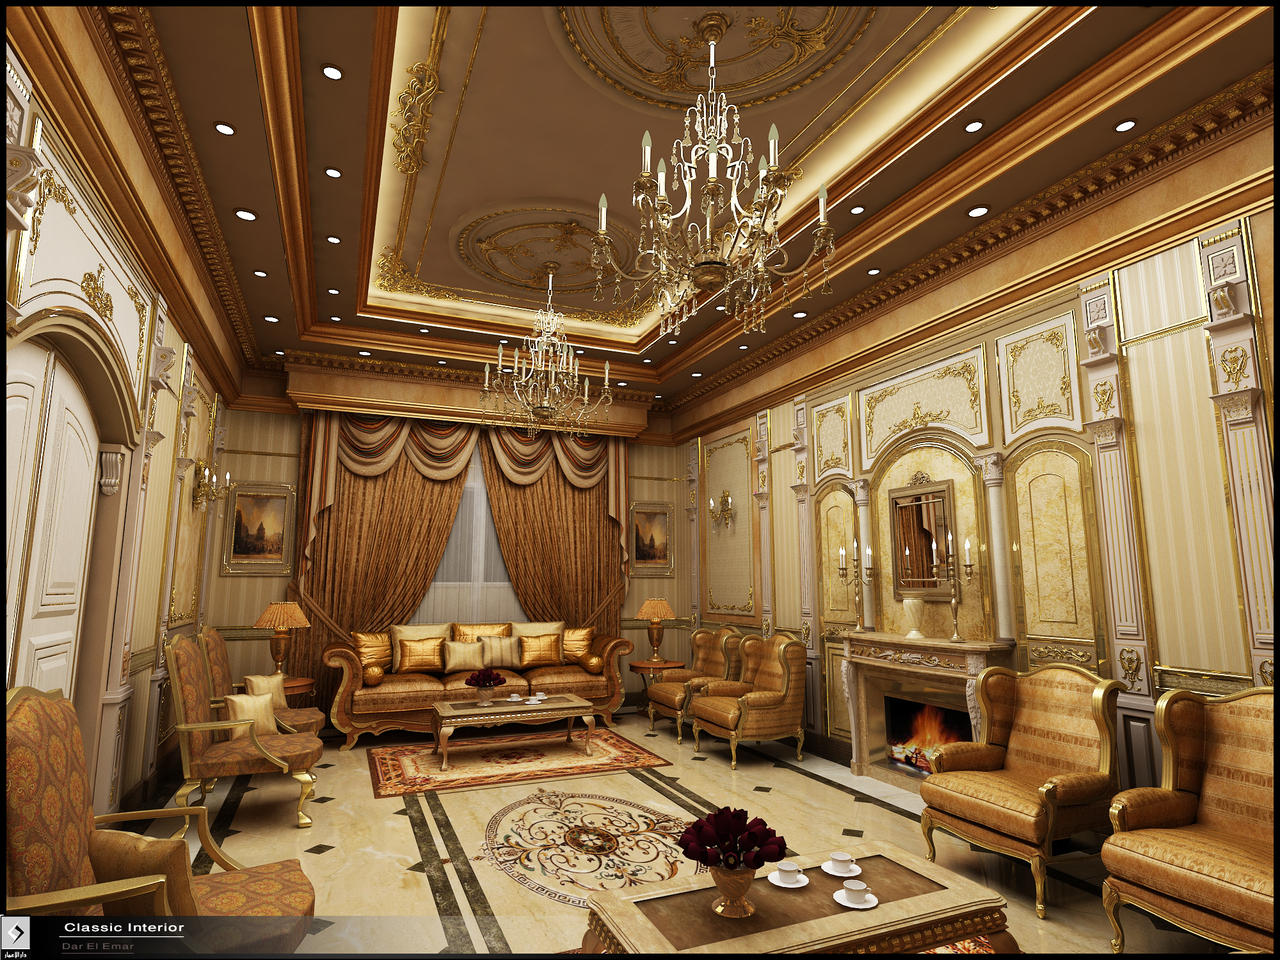 Classic Interior Design Glamorous Classic Interior In Ksaamrmaged On Deviantart